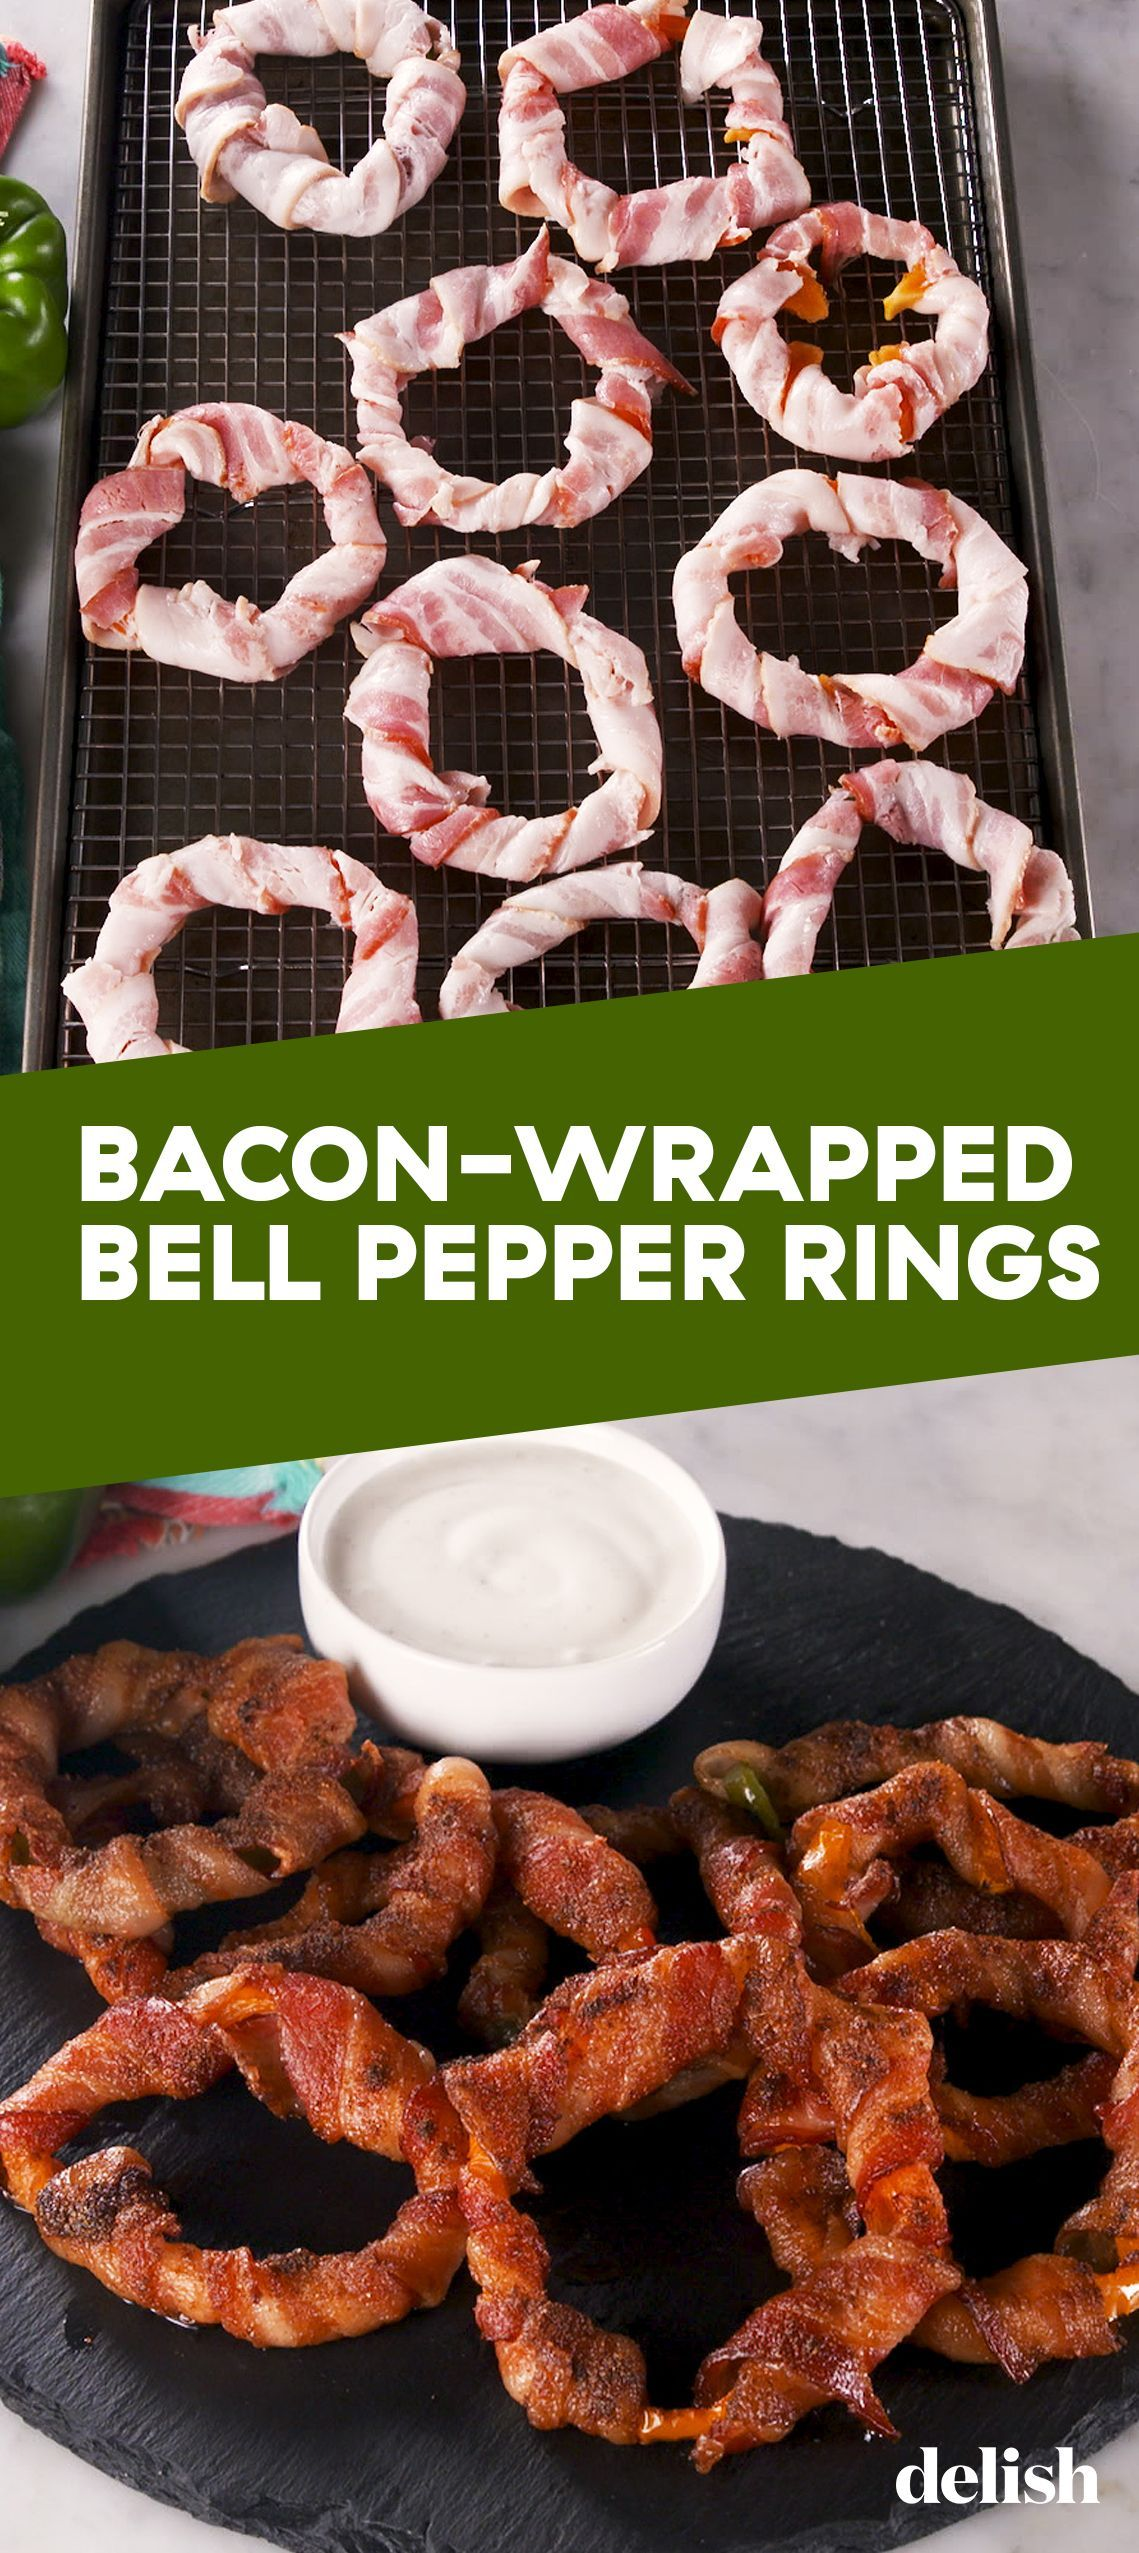 Bacon-Wrapped Bell Pepper Rings = Best Low-Carb Snack #bellpepperrecipes